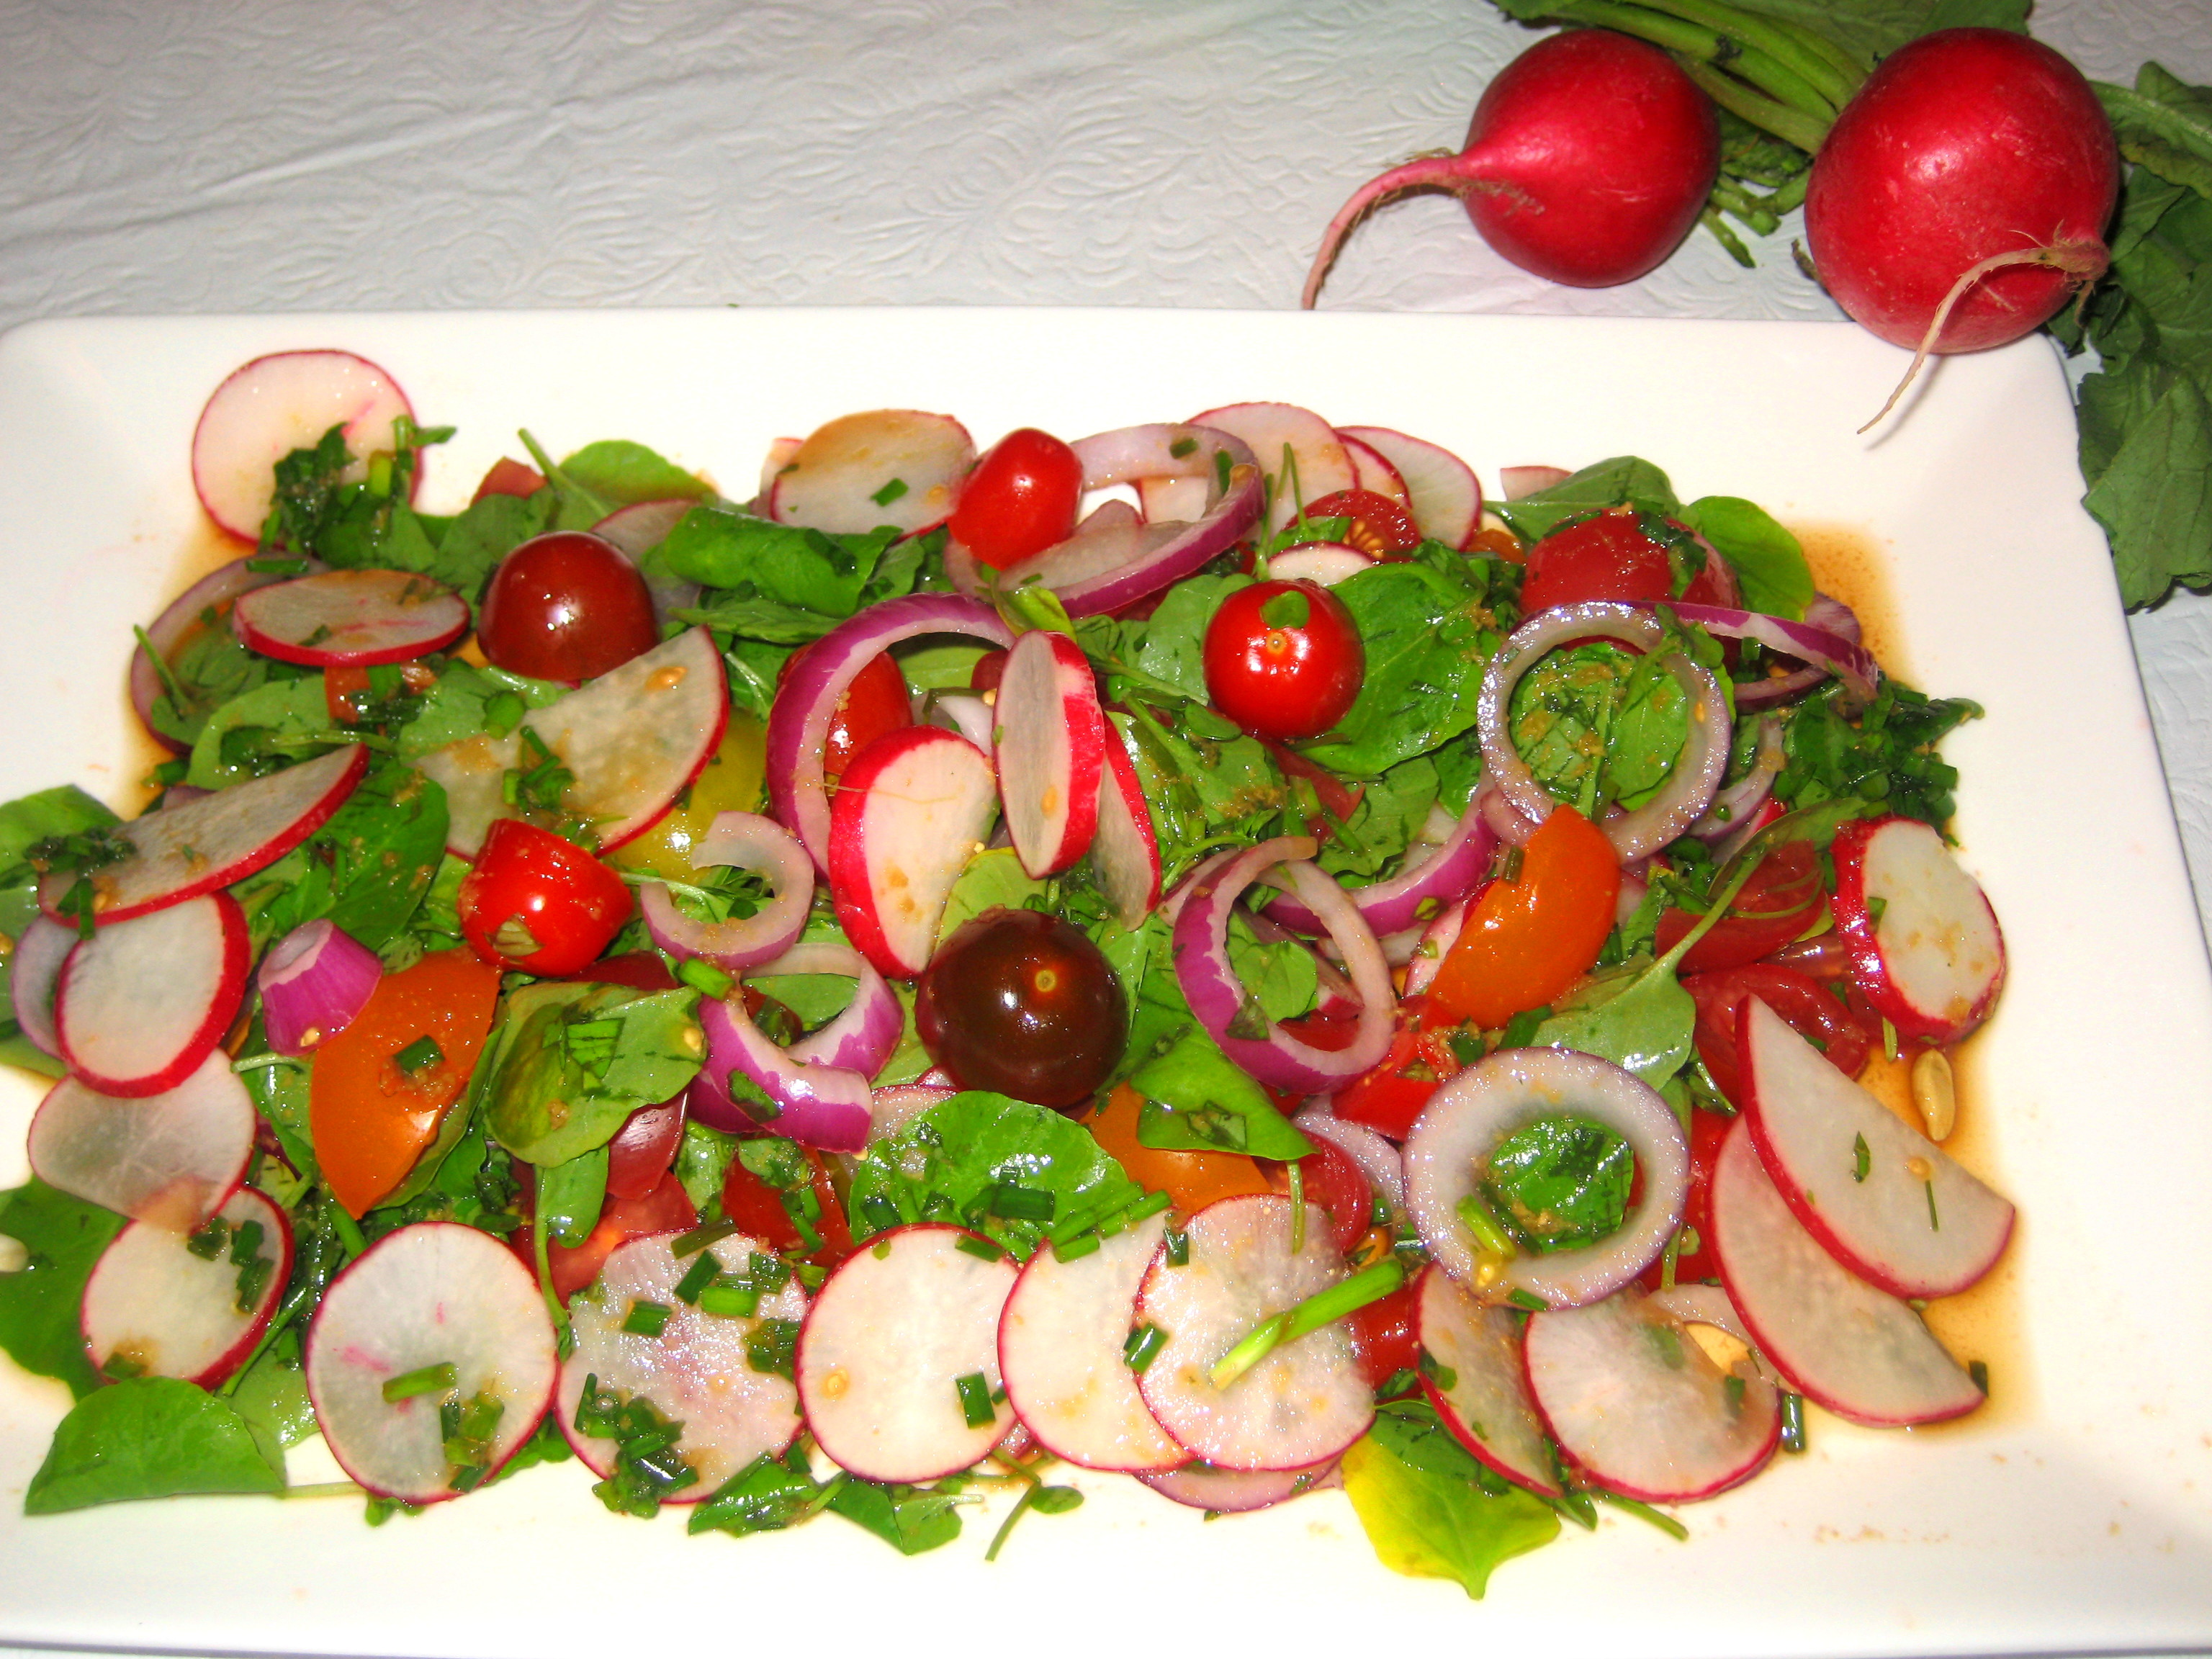 Refreshing Radish, Watercress, Tomato Salad with Lime-Soy-Ginger Dressing